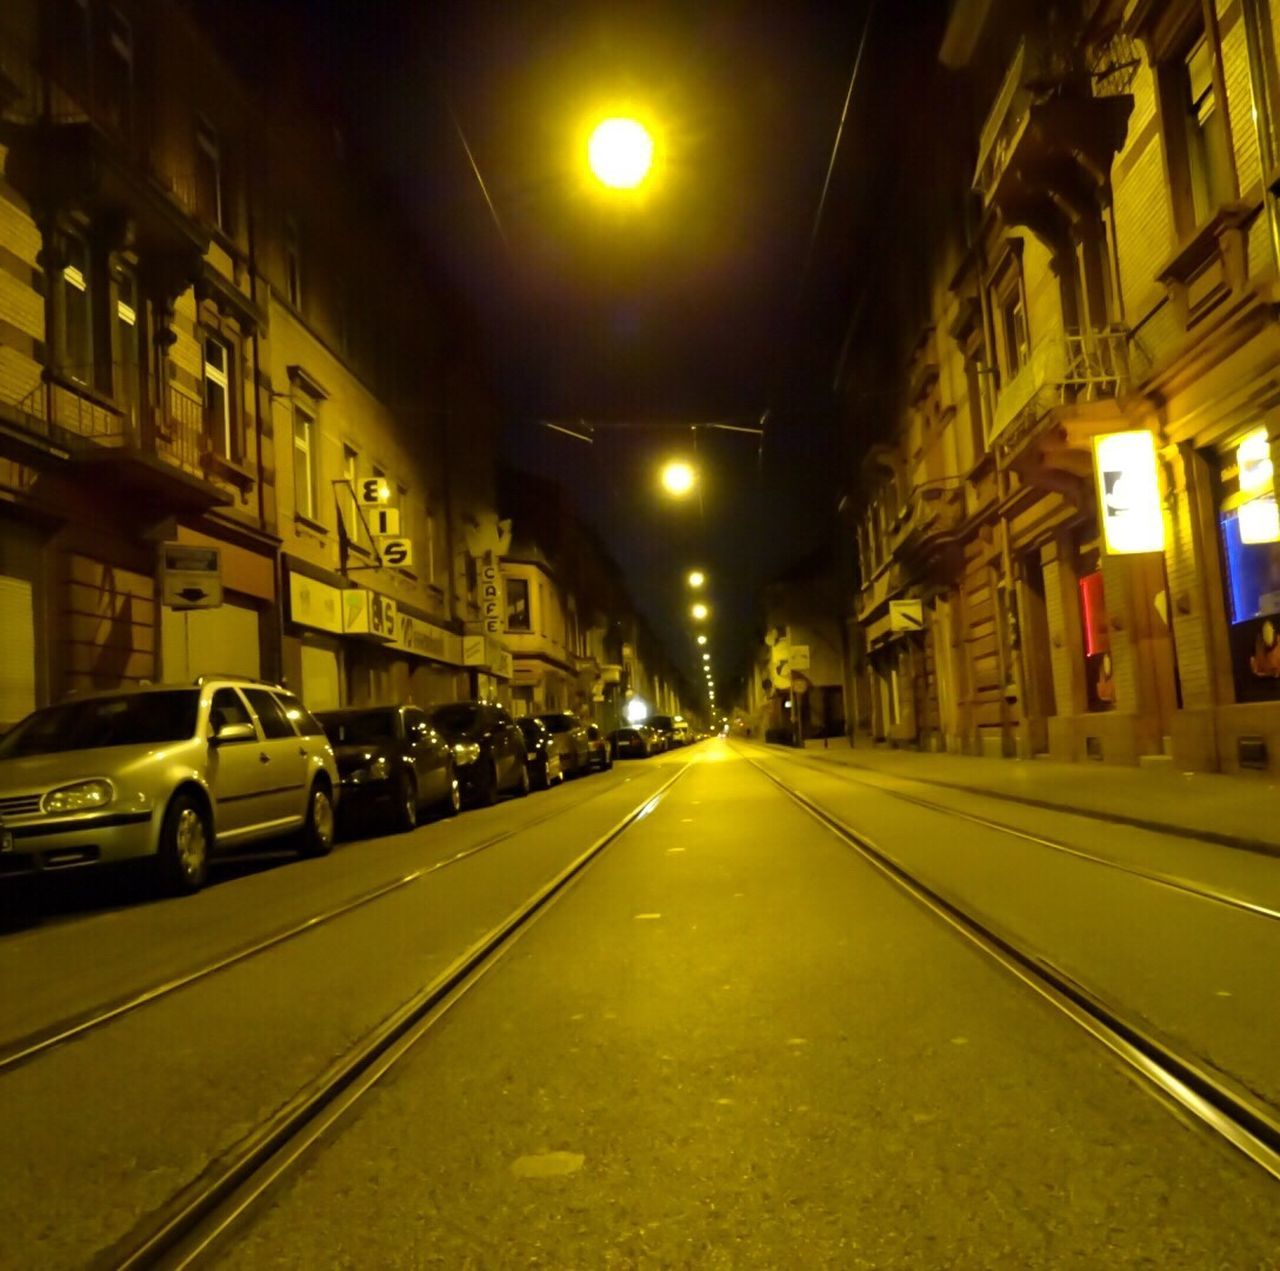 illuminated, night, architecture, building exterior, built structure, transportation, street, the way forward, city, no people, outdoors, sky